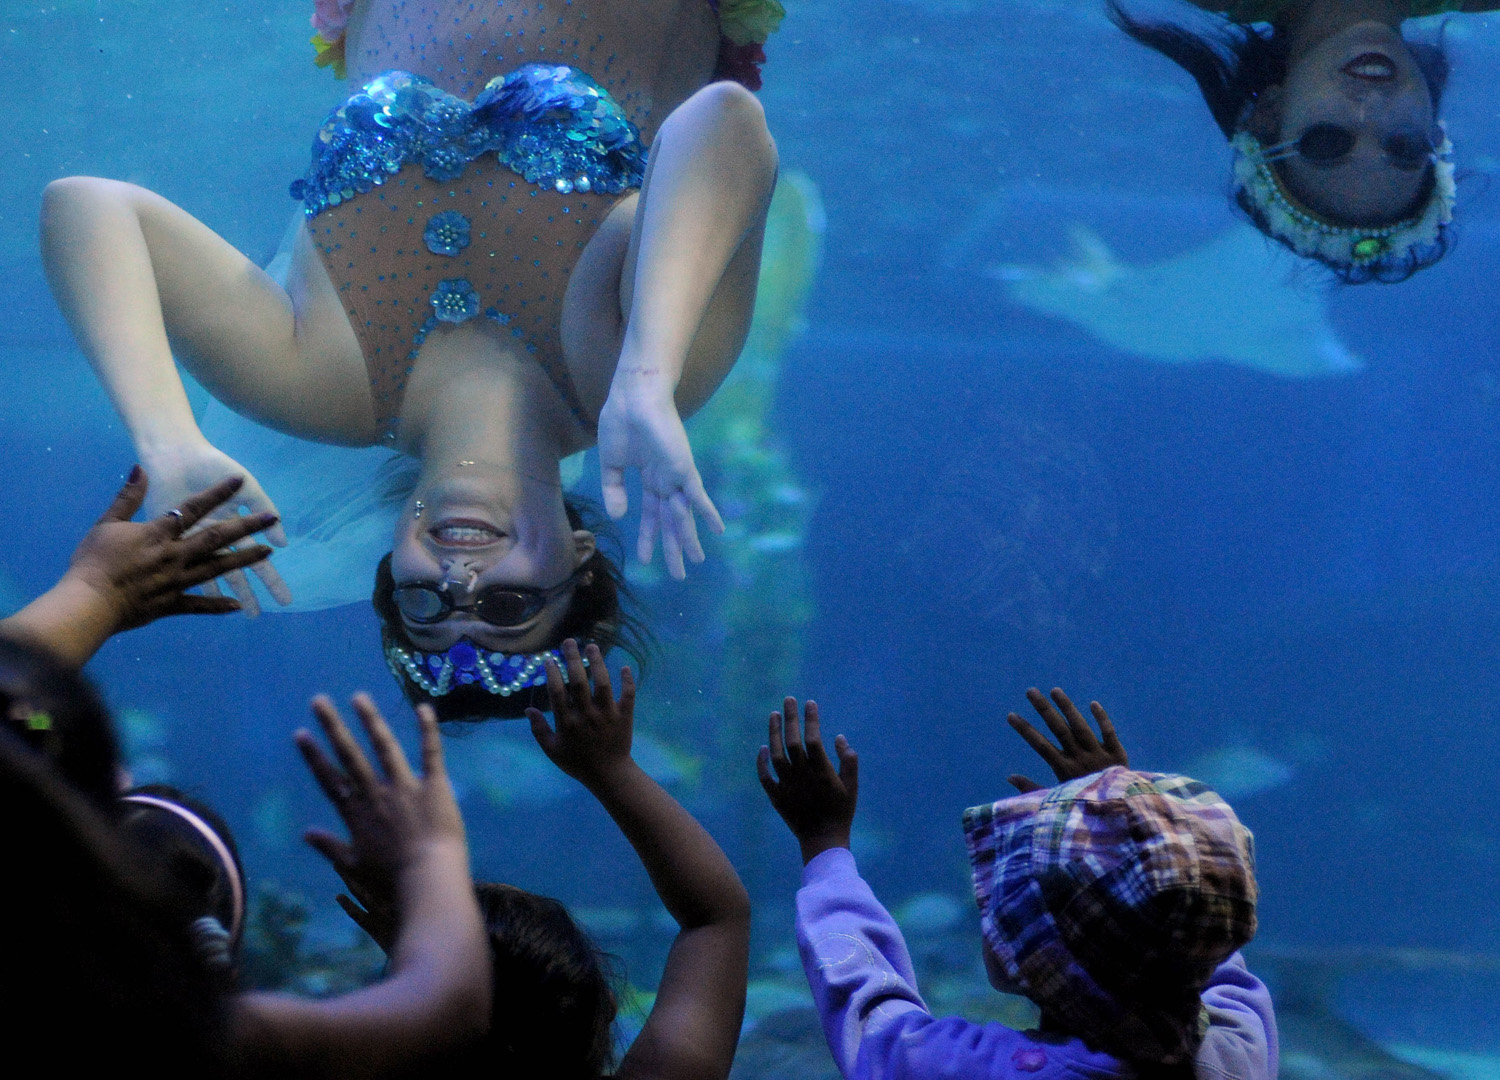 Divers in mermaid costumes perform during the Flores de Mayo or 'Flowers of May' festival at the Ocean Park Oceanarium in Manila on May 23, 2014.